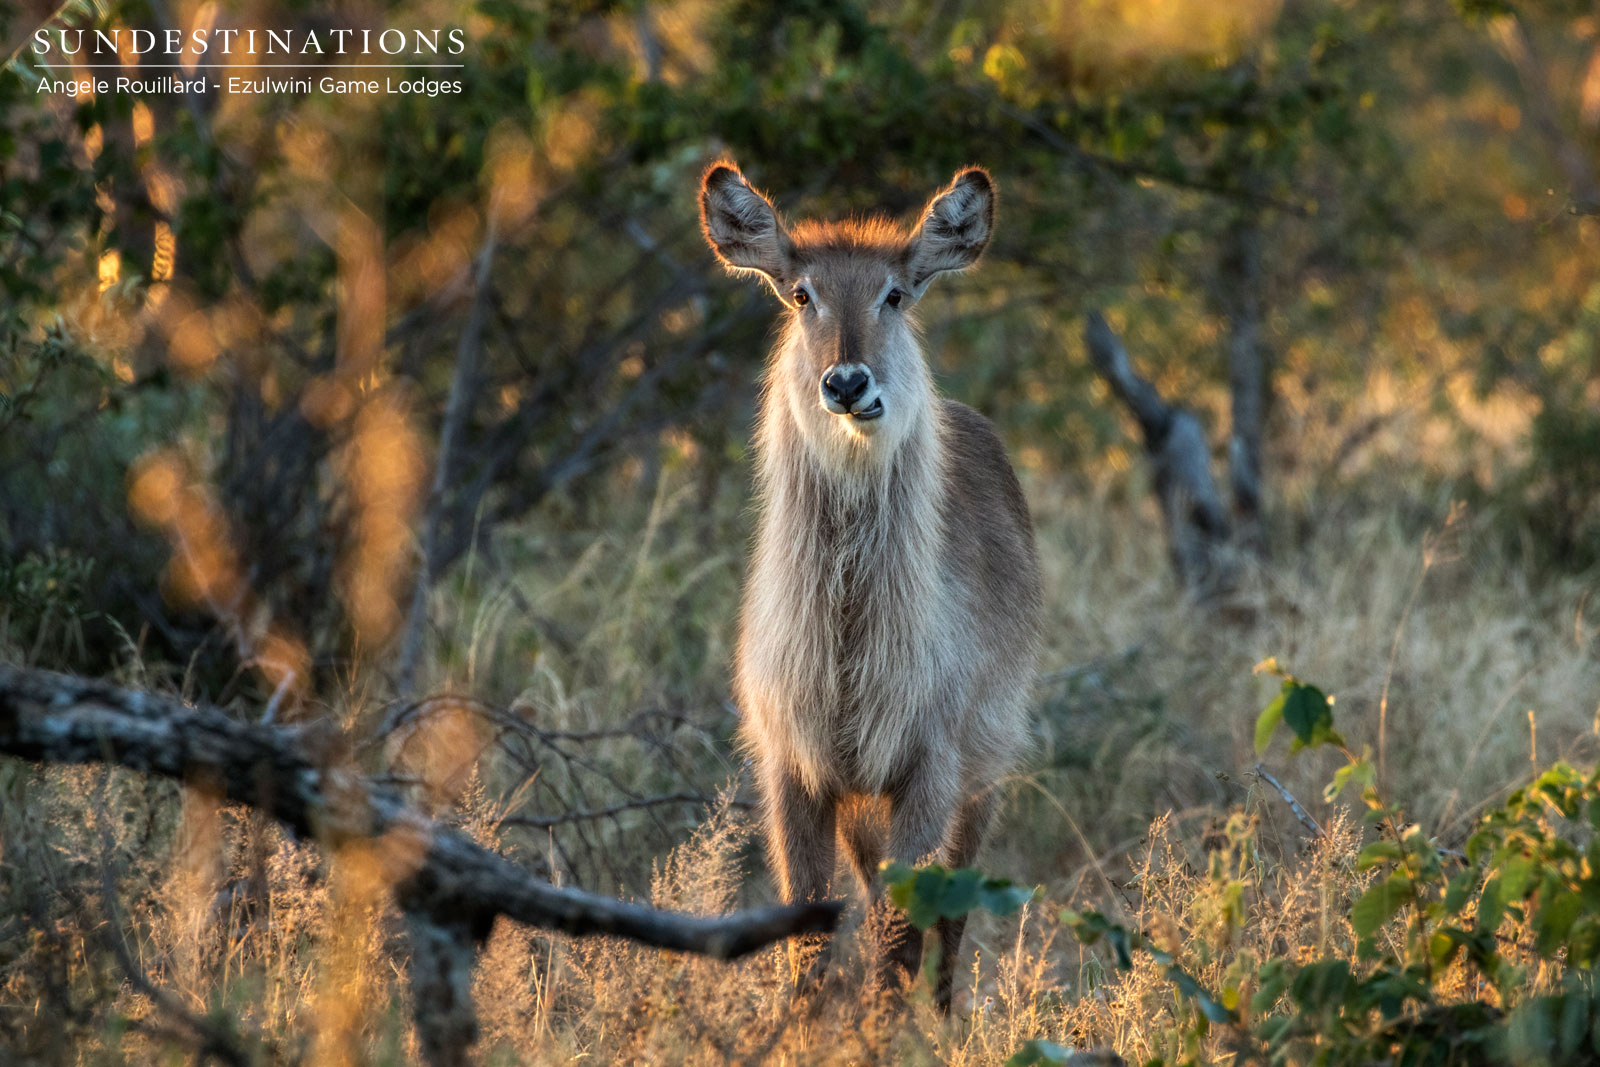 Waterbuck Ezulwini Game Lodges